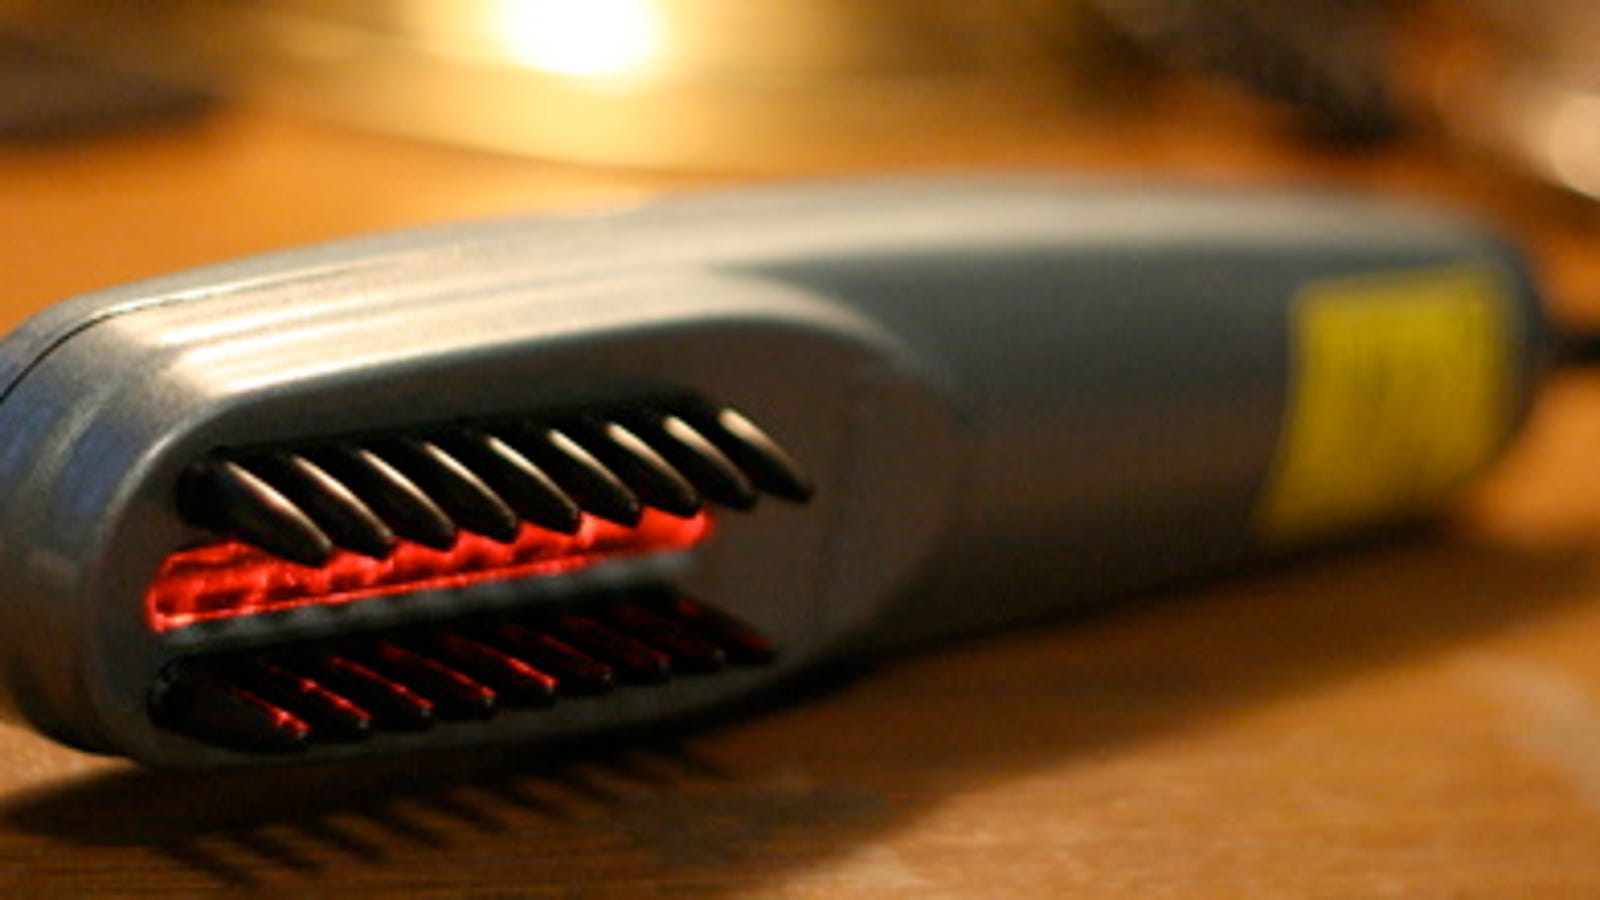 hairmax laser comb instructions